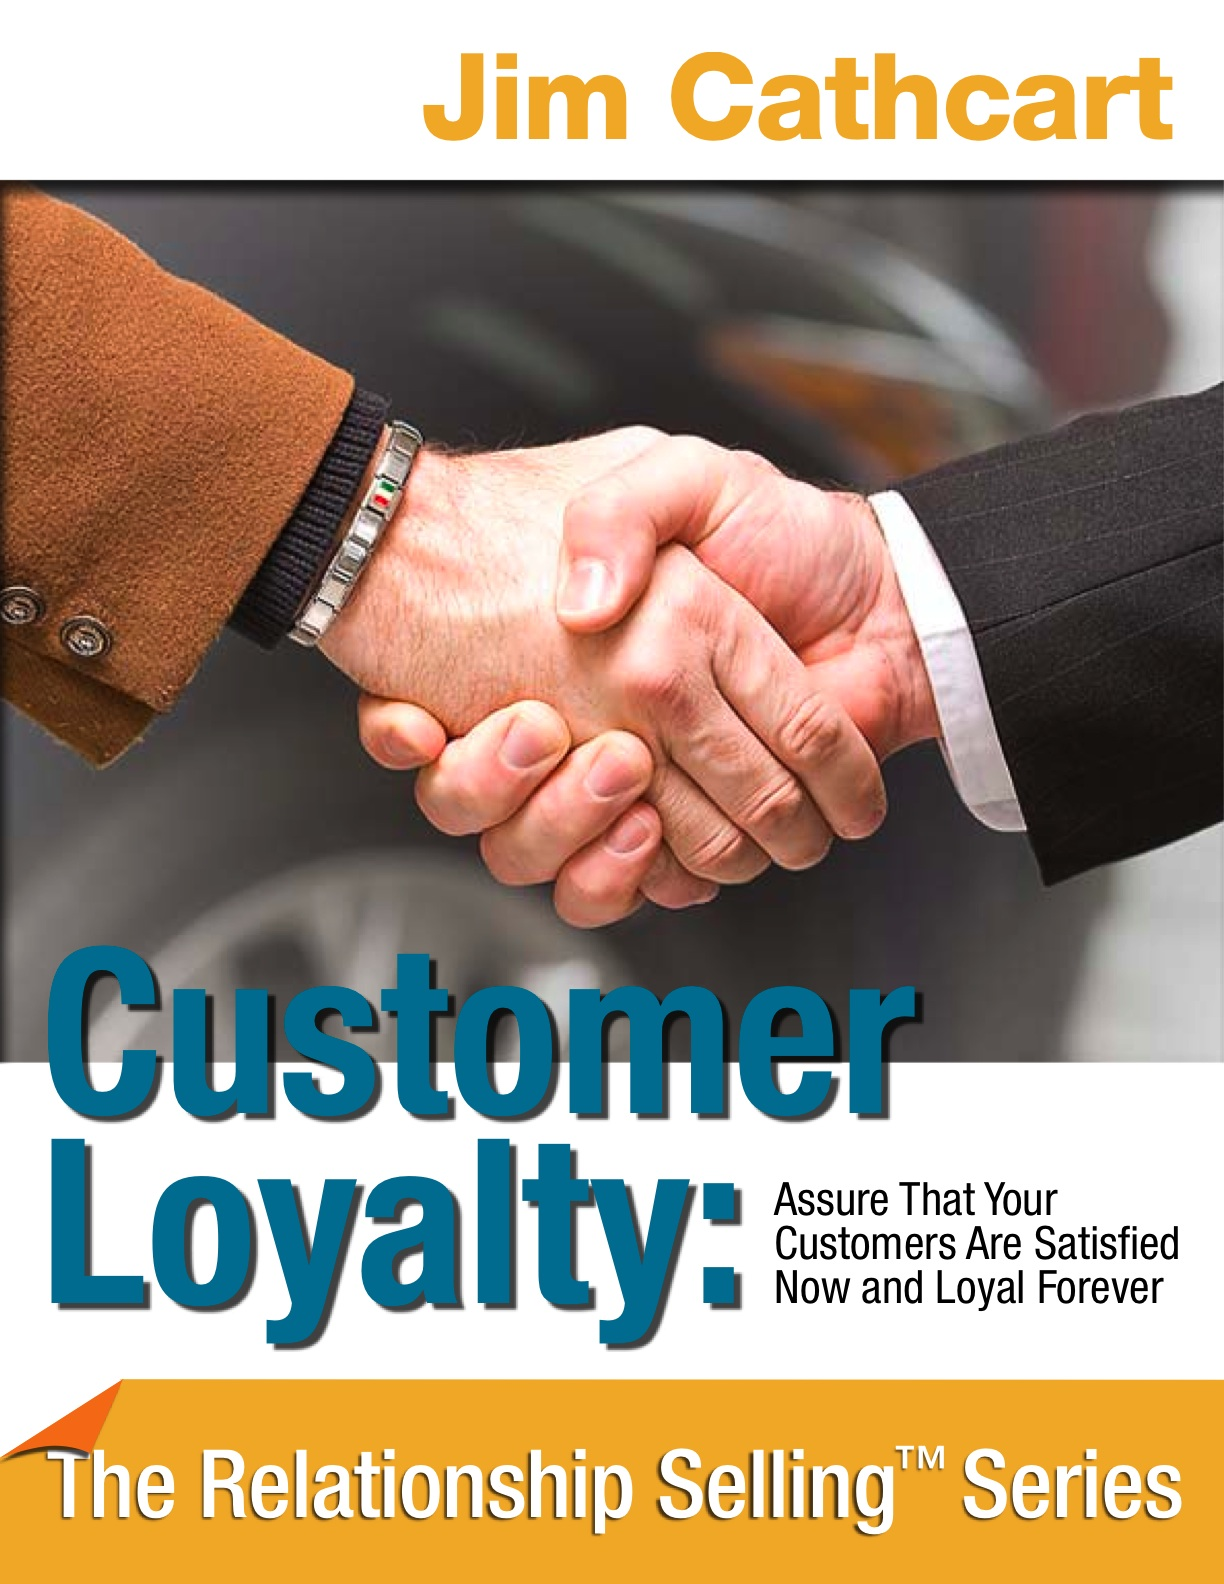 Ways to Take Customer Loyalty to the Next Level